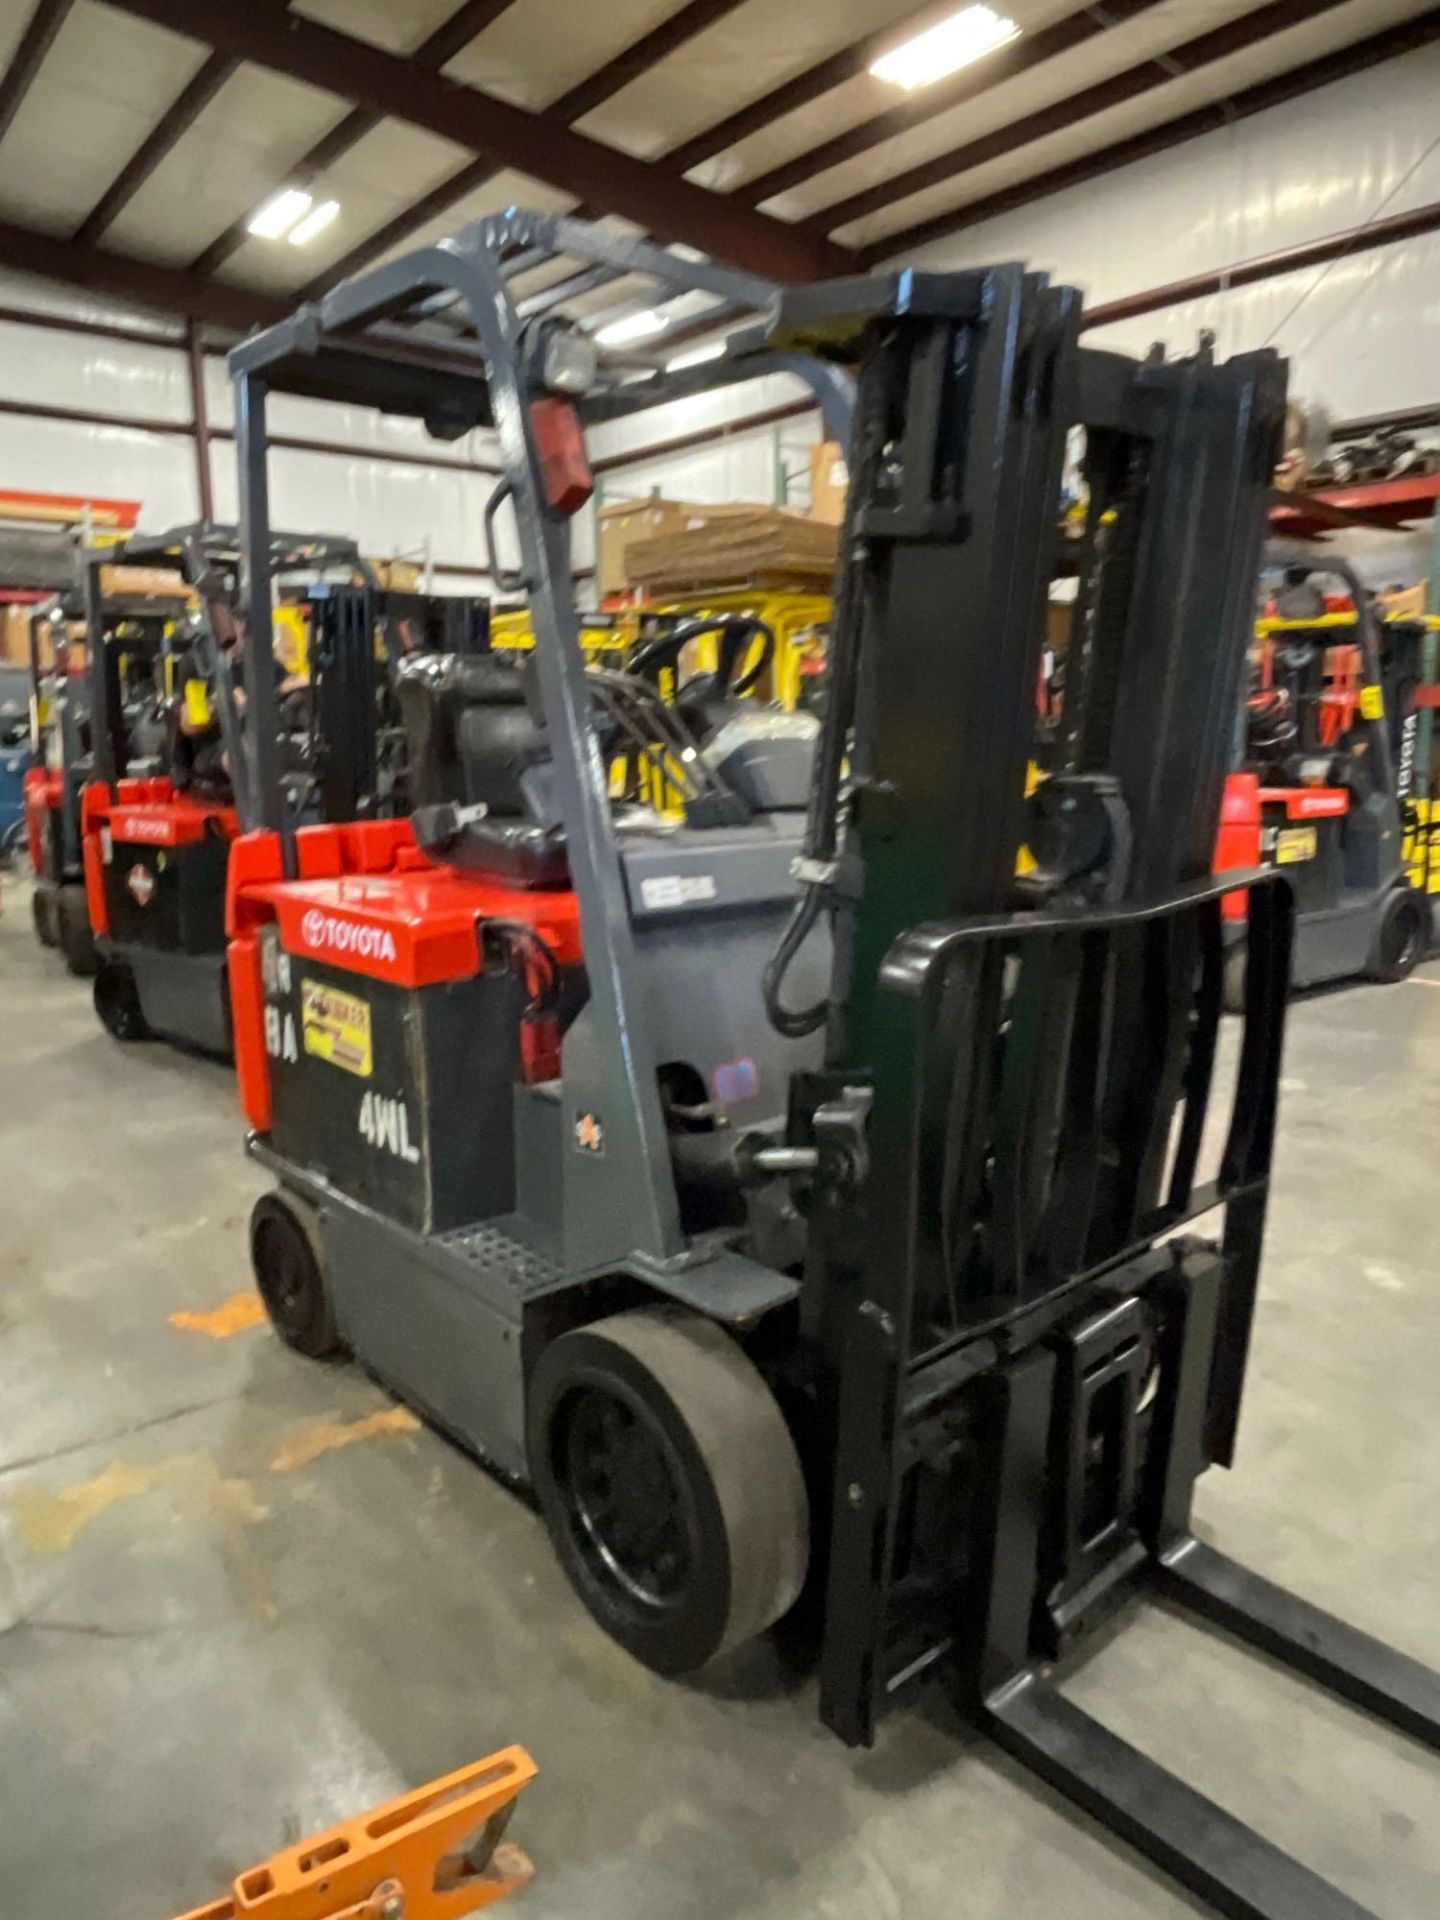 """TOYOTA 7FBCU25 ELECTRIC FORKLIFT, 5,000 LB CAPACITY, 170.5"""" HEIGHT CAPACITY, TILT, SIDE SHIFT - Image 3 of 16"""